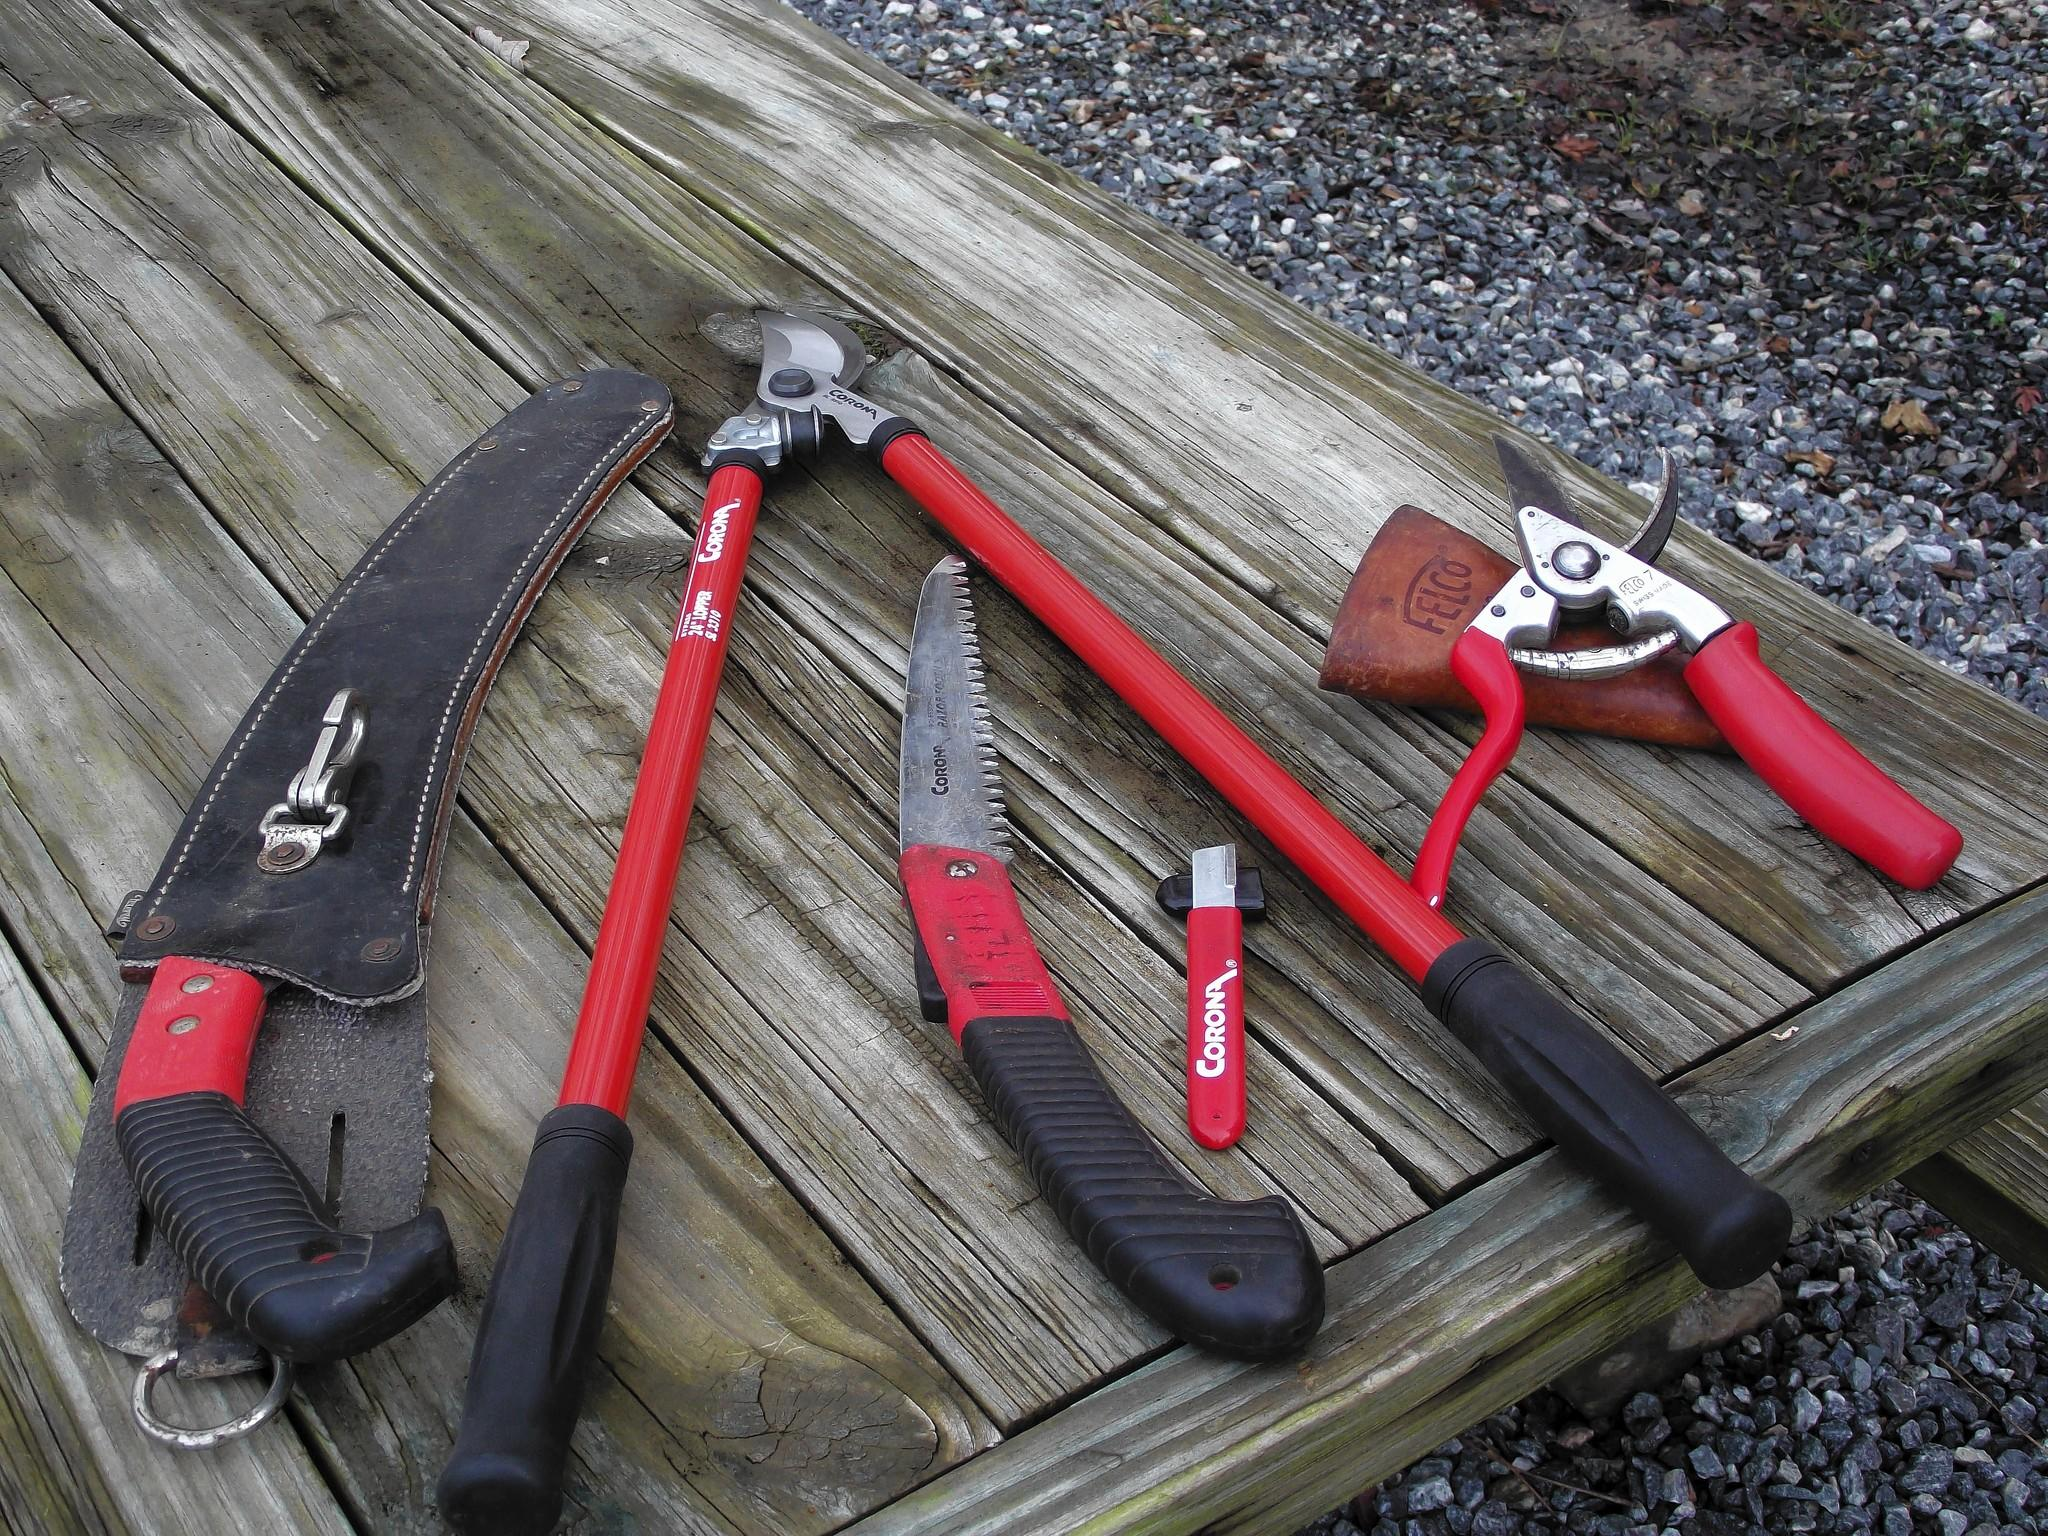 Some tools needed for proper pruning include bypass pruners, razor-teeth saws and loppers; holsters can be used for easy access.